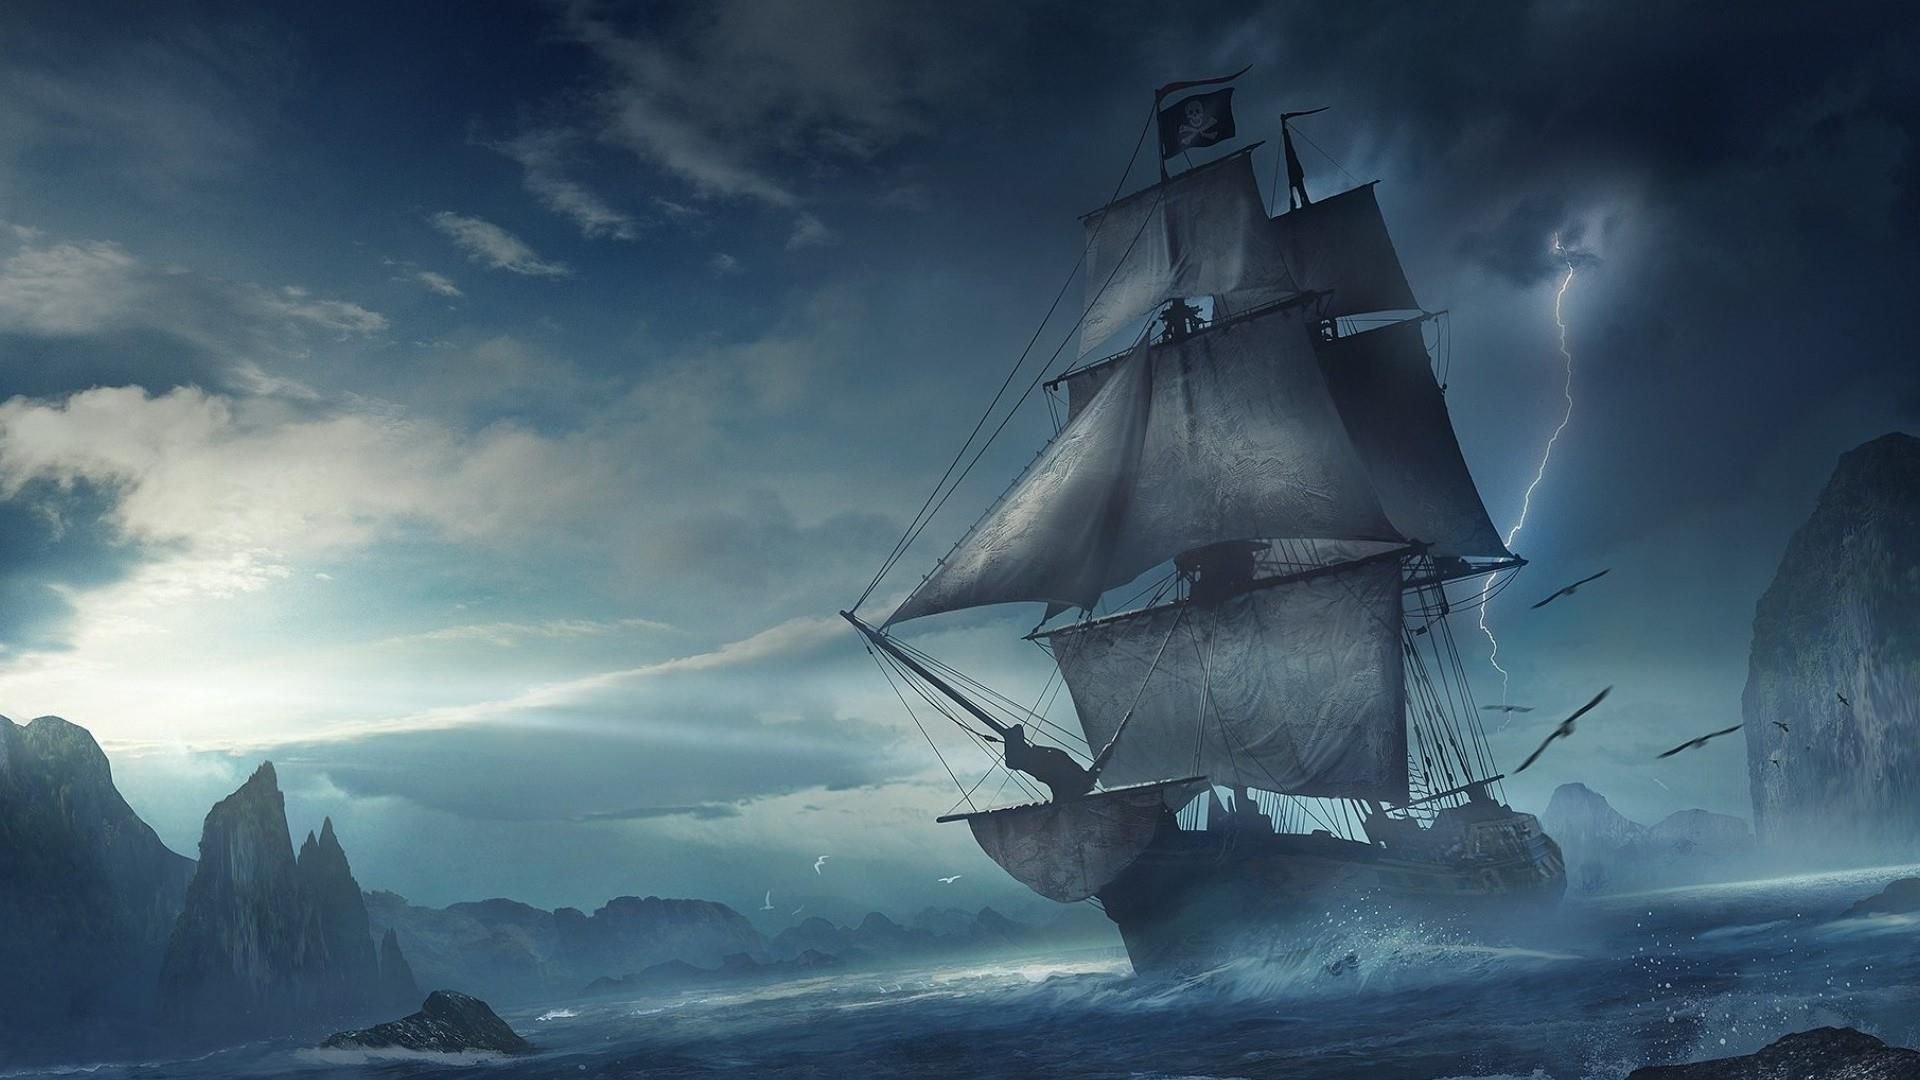 Pirate Ship Wallpapers Hd On Wallpaper 1080p HD Awesome Art 1920x1080